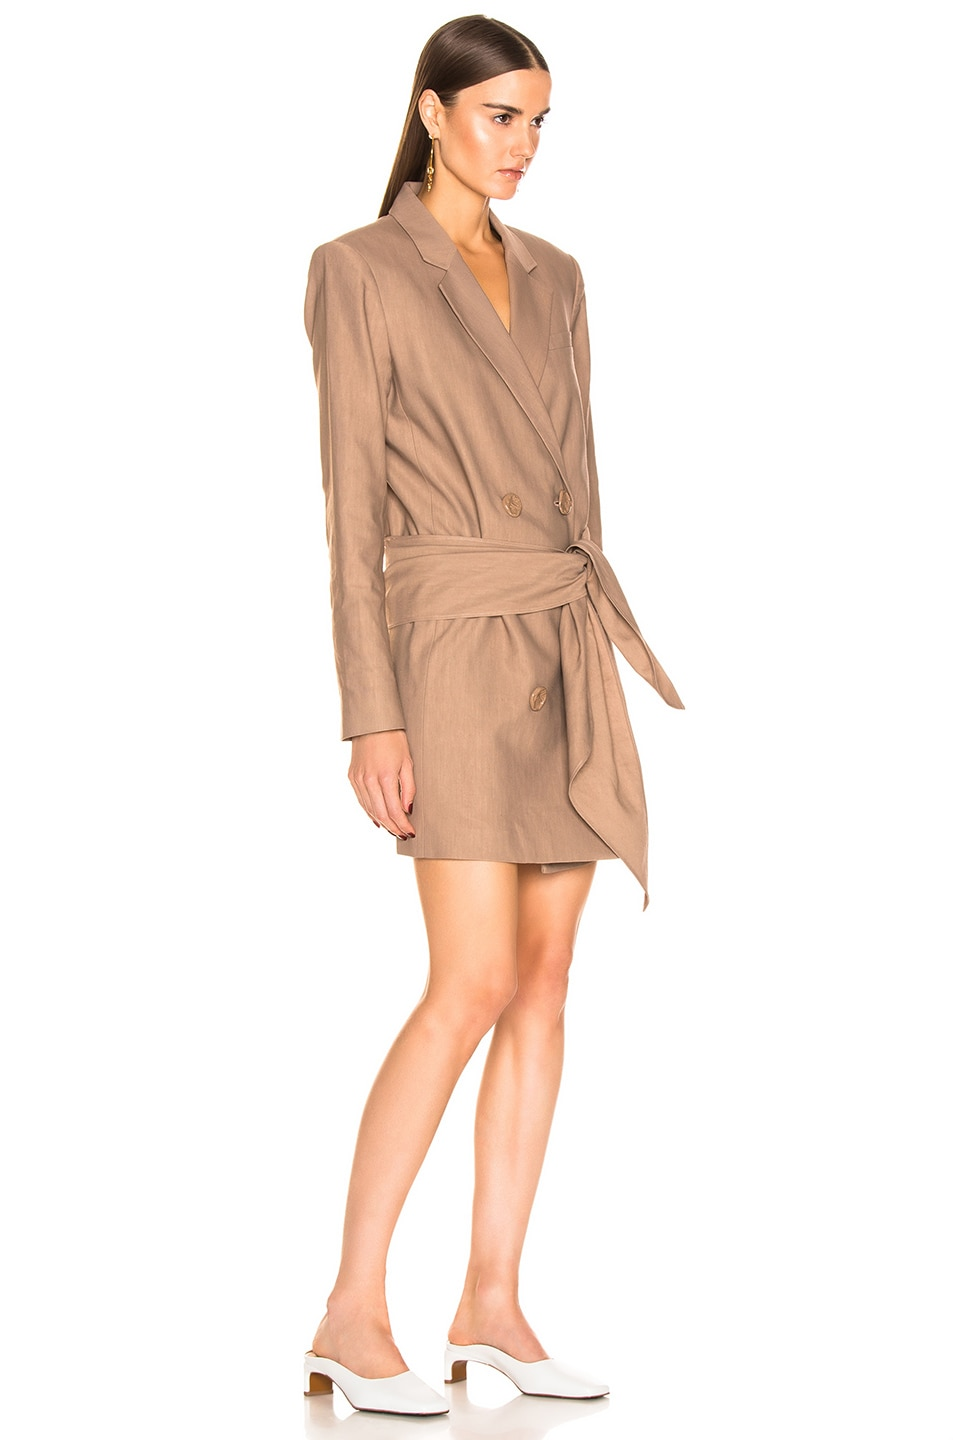 Image 3 of Tibi Linen Suiting Blazer Dress With Detachable Tie in Sable Brown